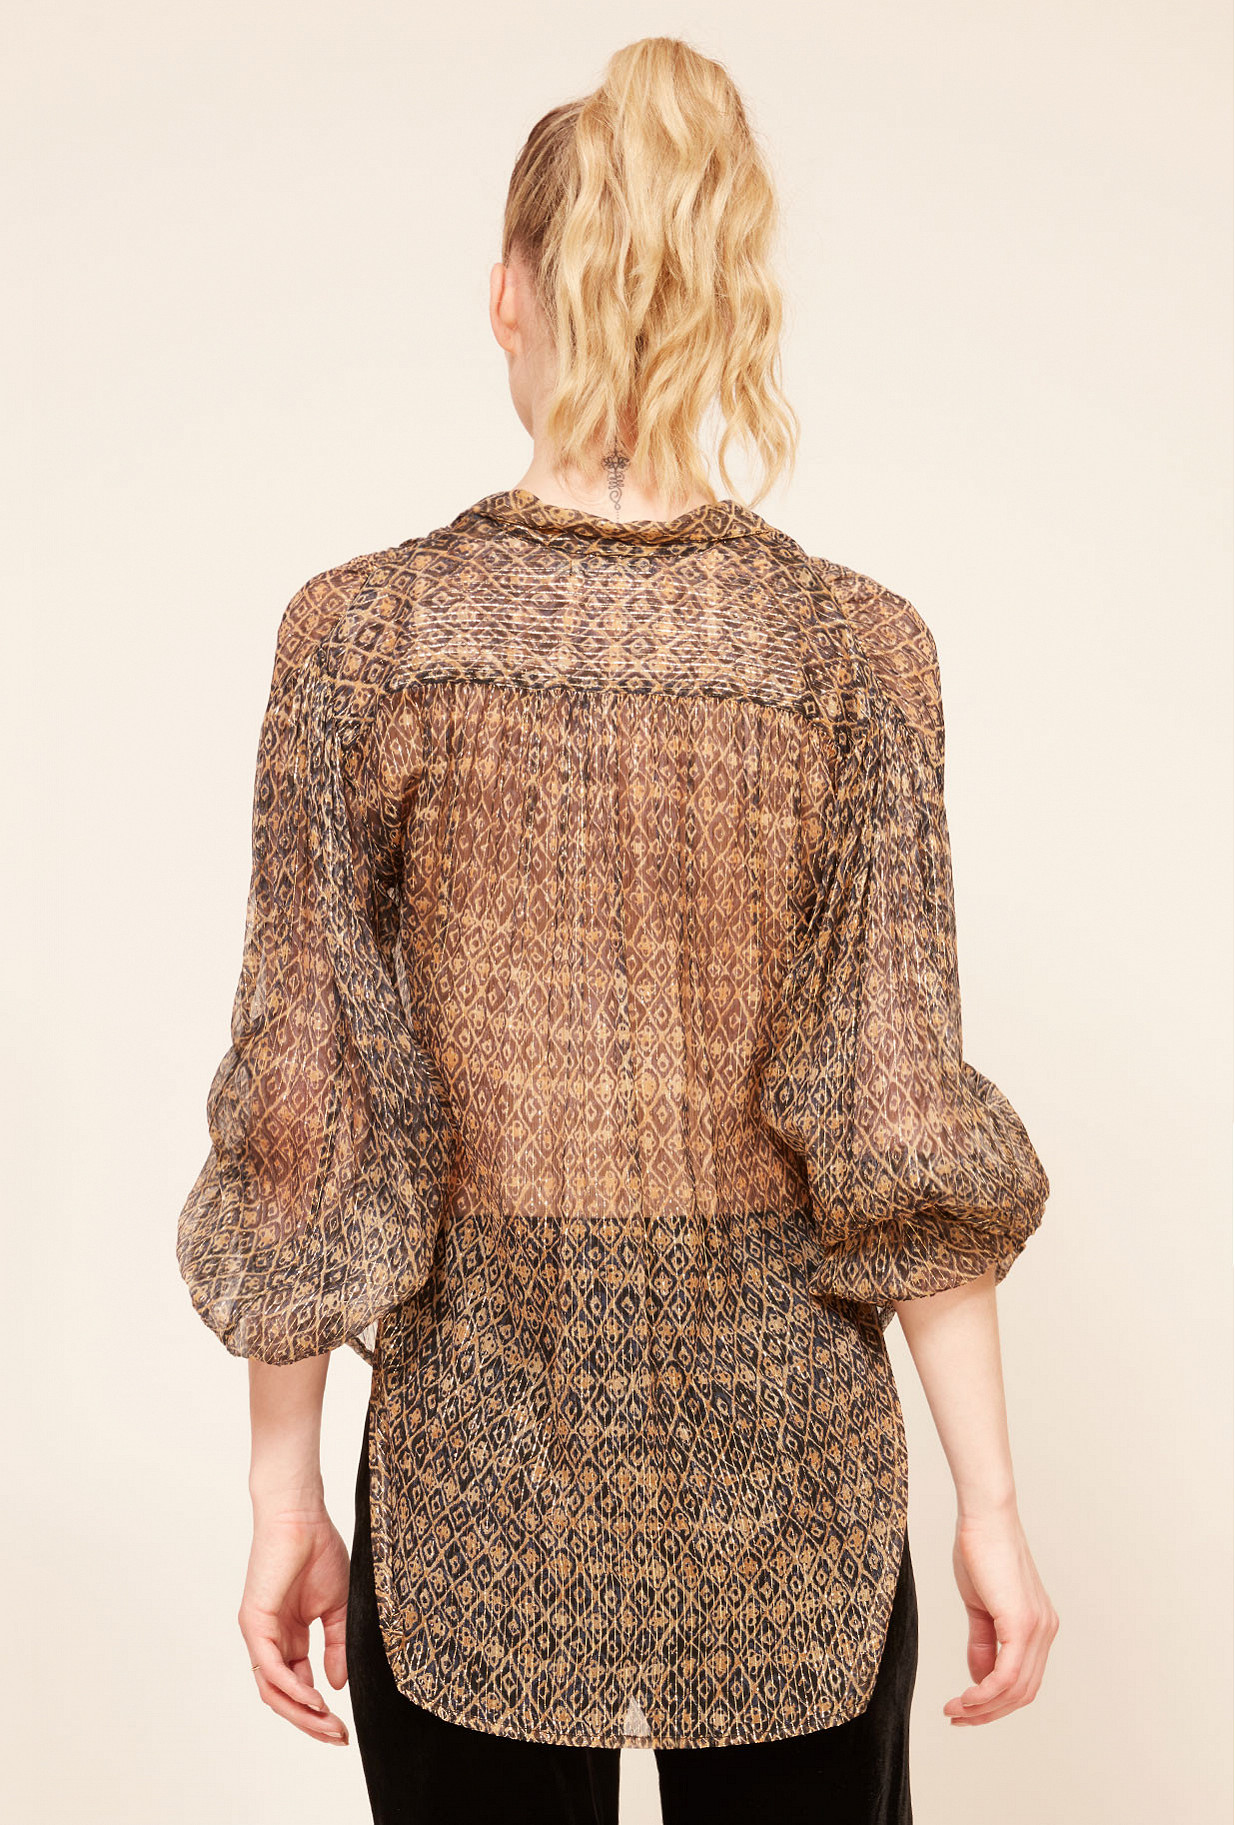 Brown print  Shirt  Romuald Mes demoiselles fashion clothes designer Paris